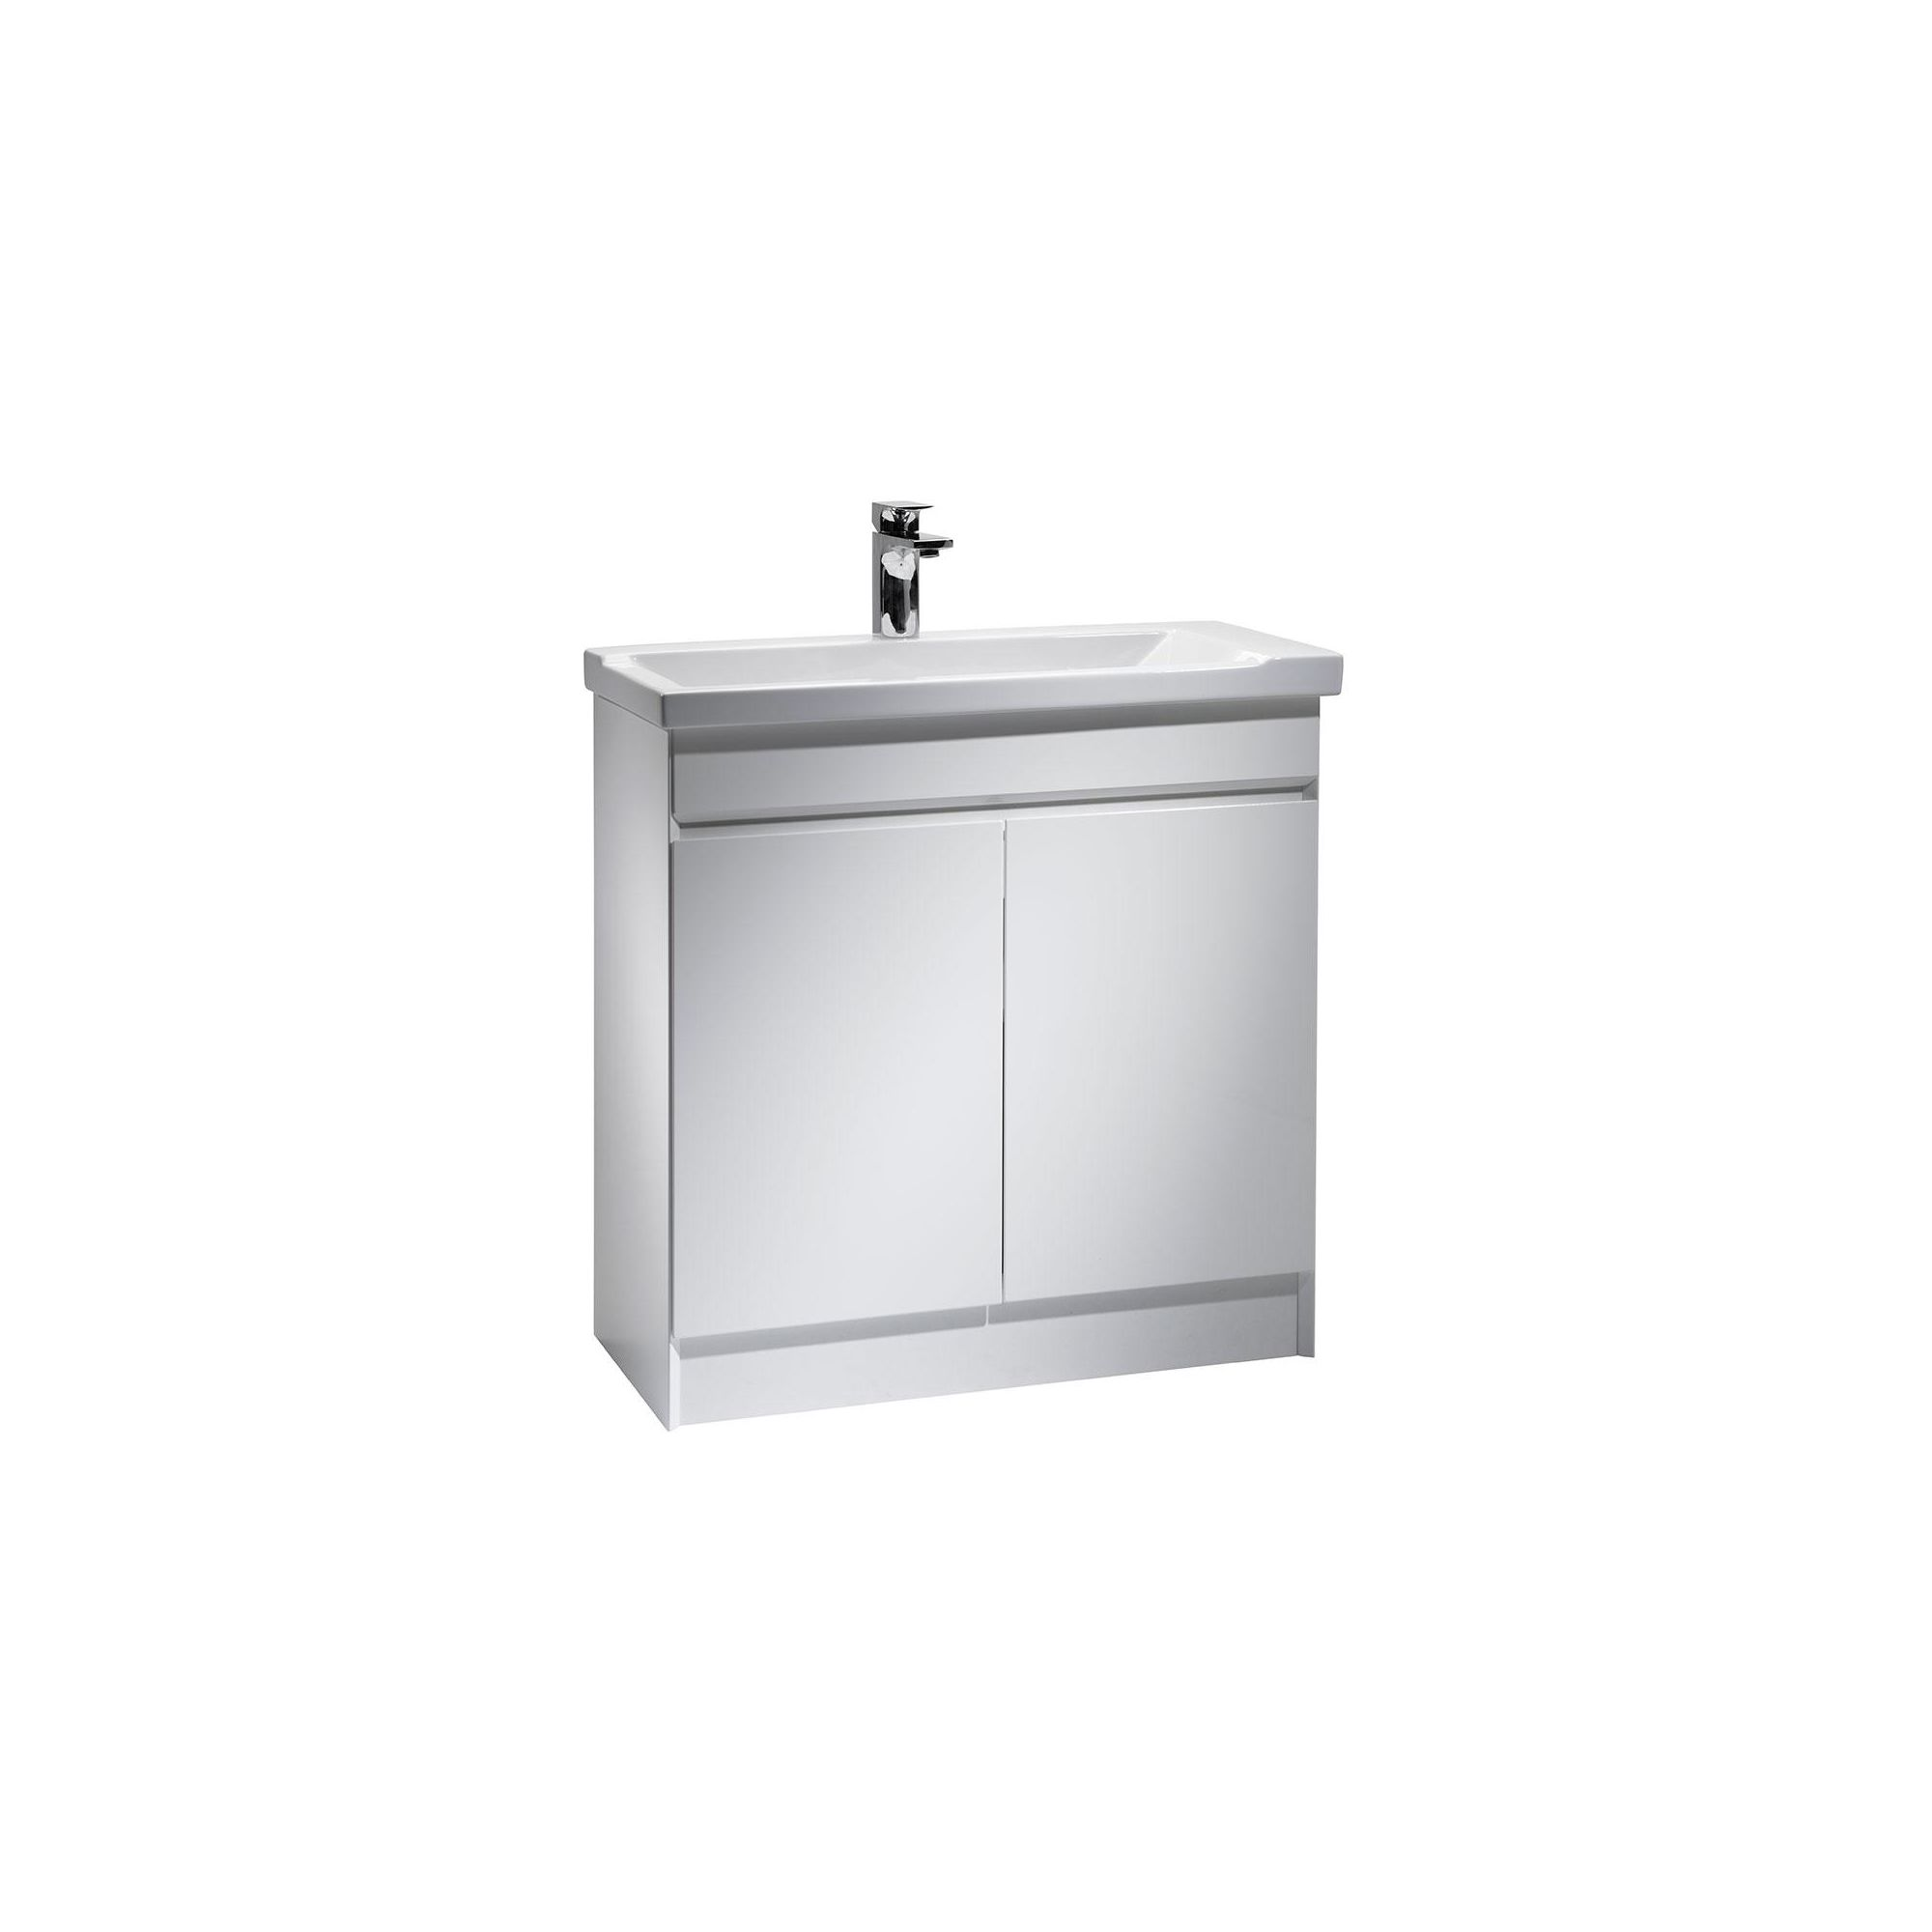 Tavistock sharp white floor standing cabinet and basin 1 for Bathroom cabinets 800mm wide